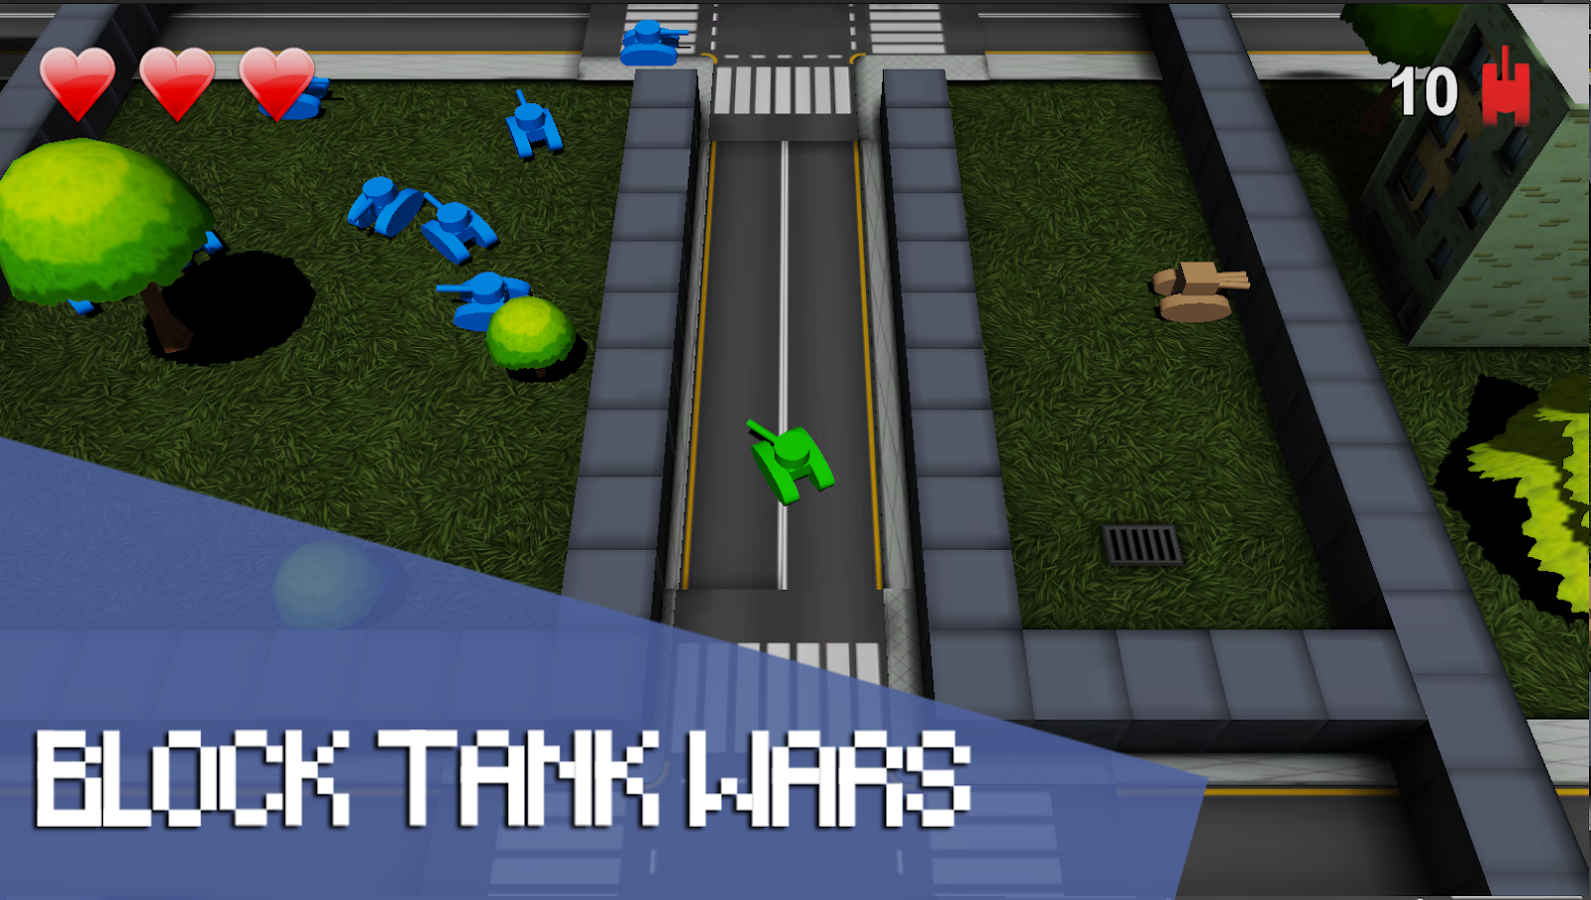 Block Tank Wars Screenshot 6